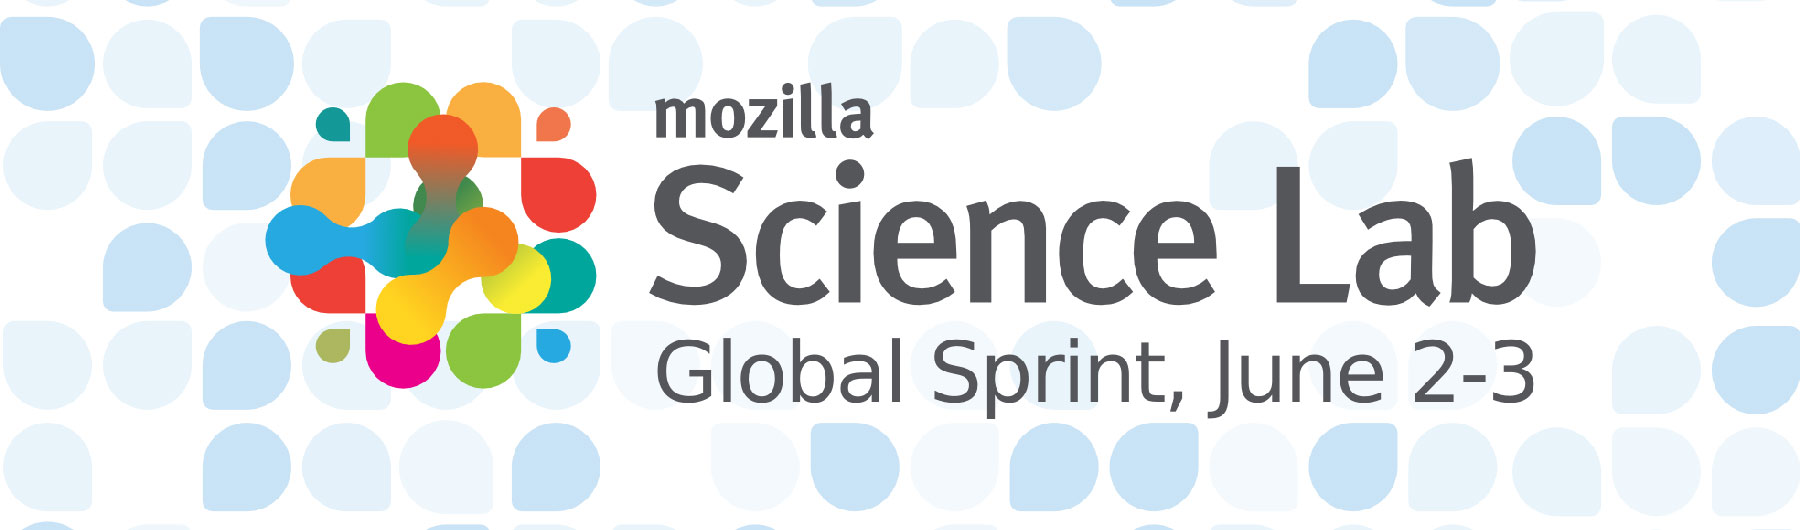 Mozilla Science Global Sprint 2016, Madrid